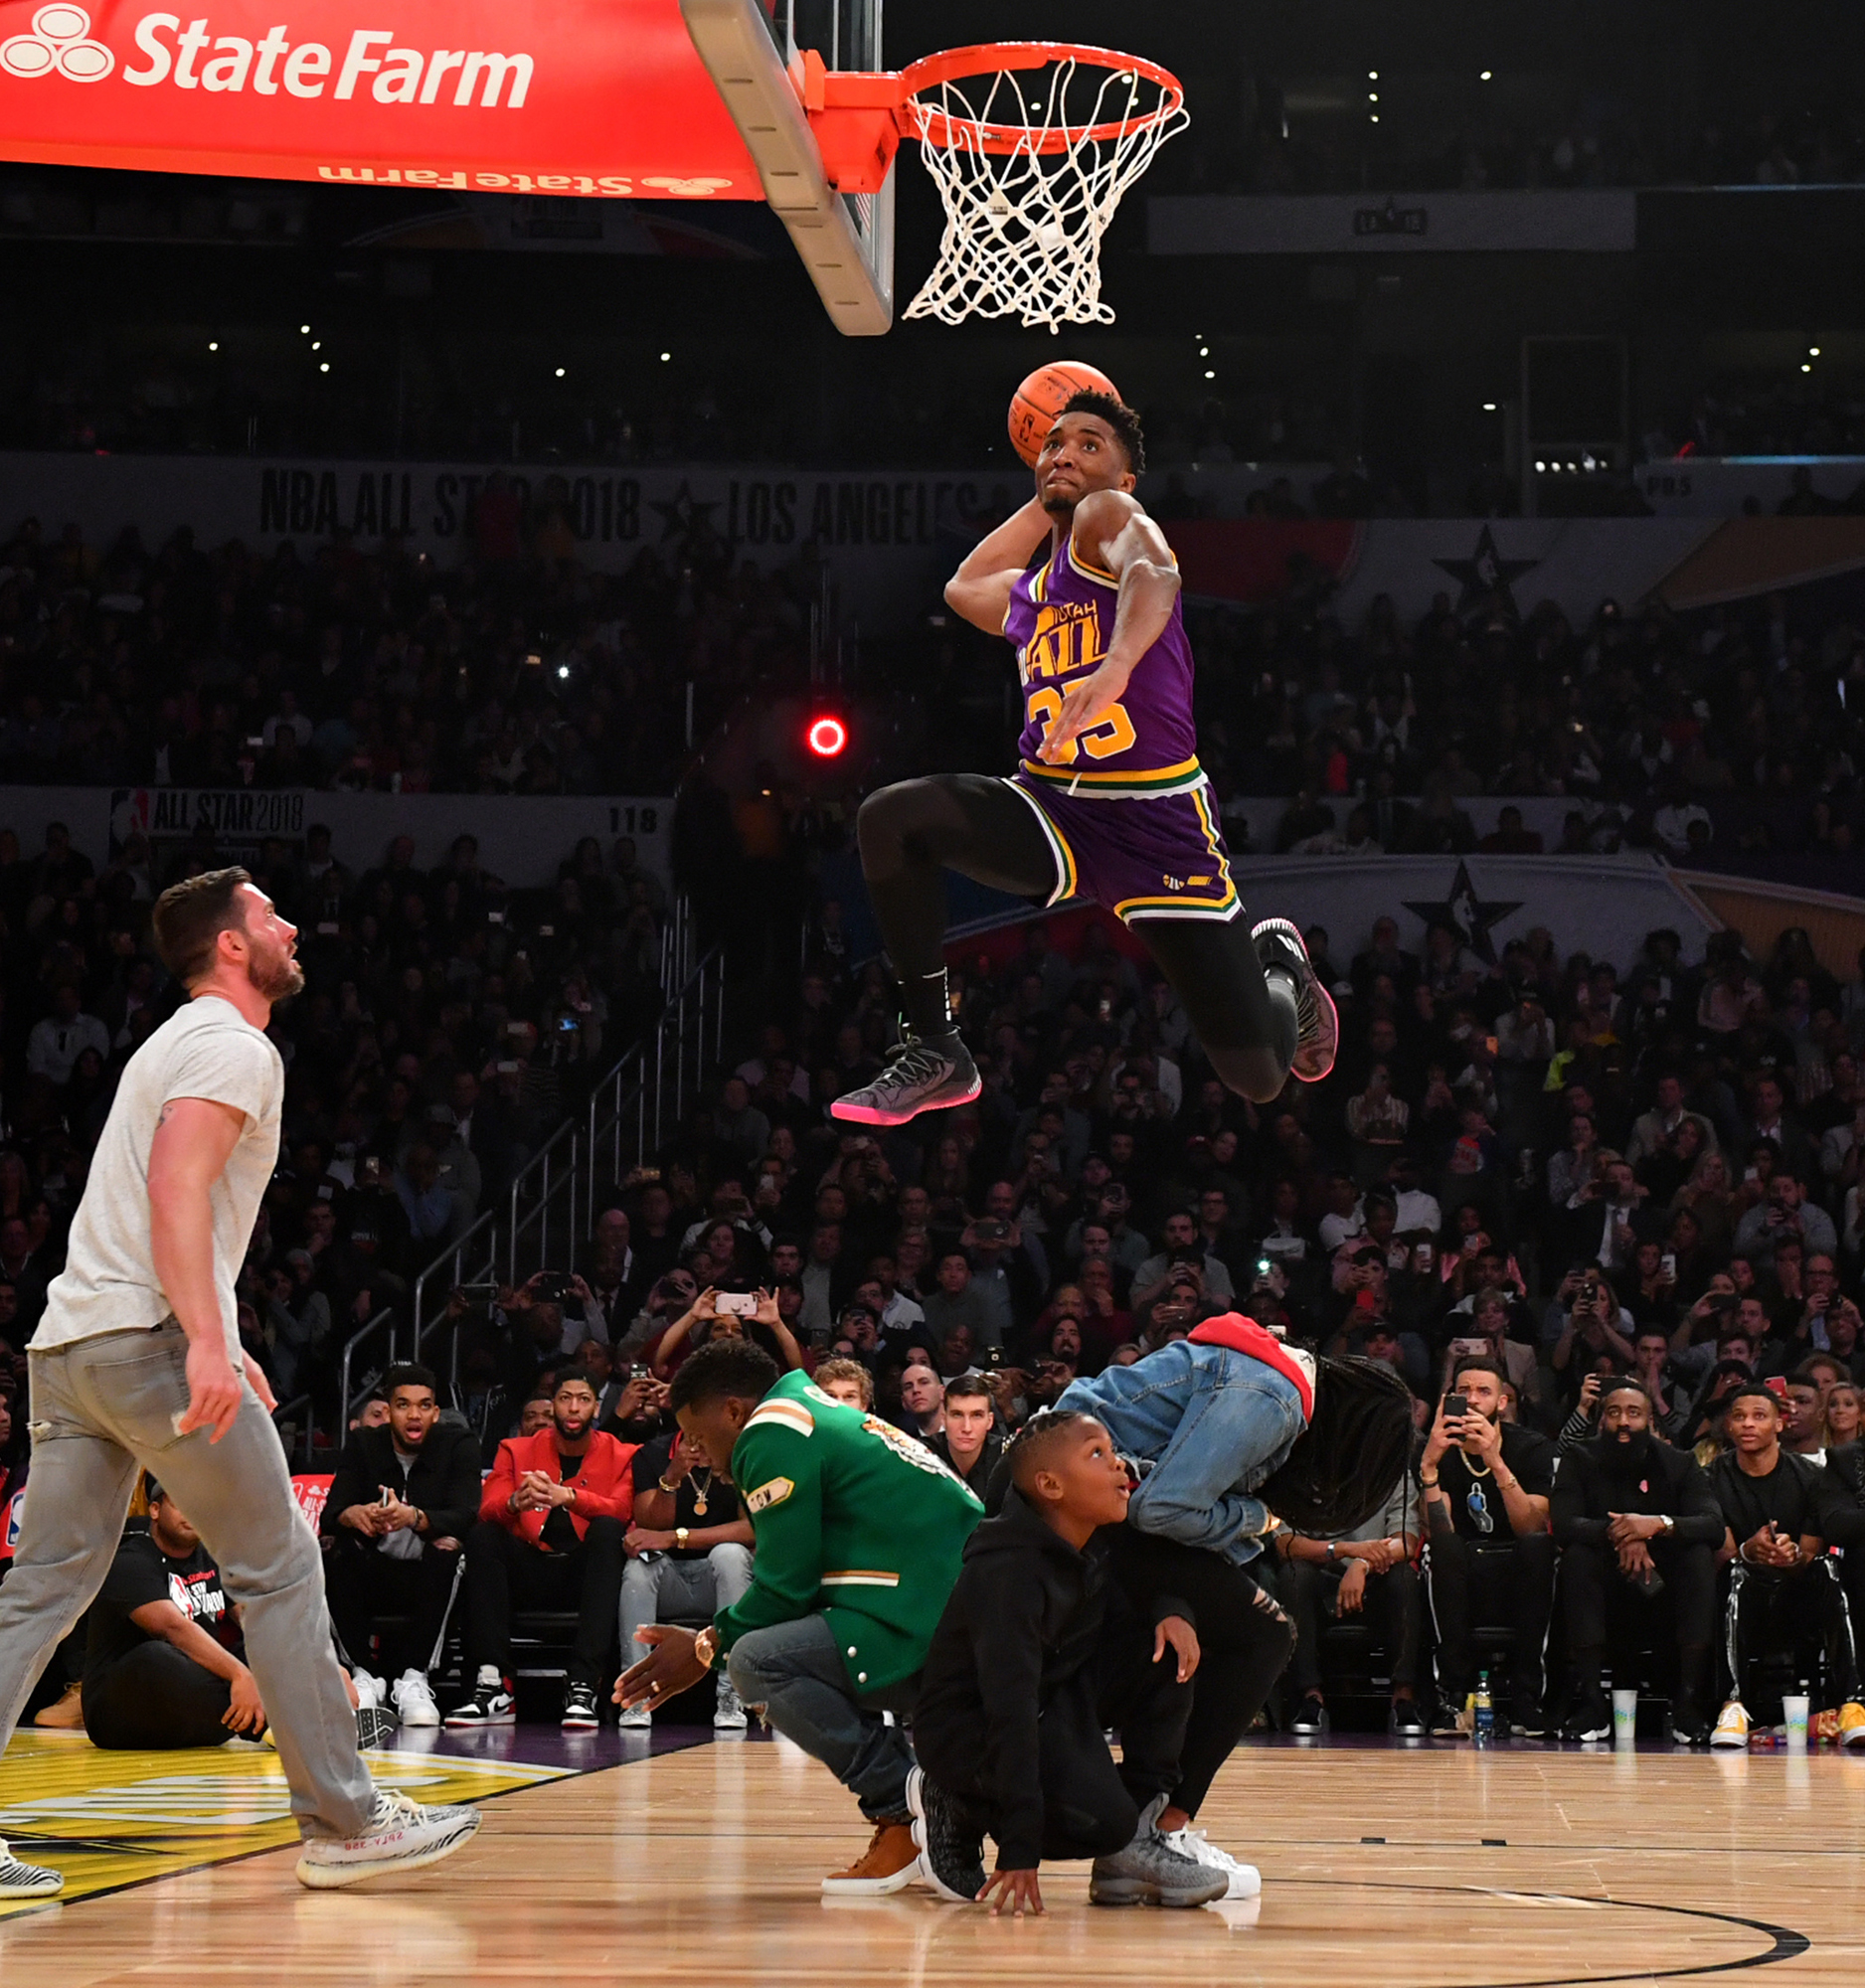 fd4d30326 Donovan Mitchell of the Utah Jazz dunks over Kevin Hart (center left) and  crew during the Verizon Slam Dunk Contest during State Farm All-Star  Saturday ...